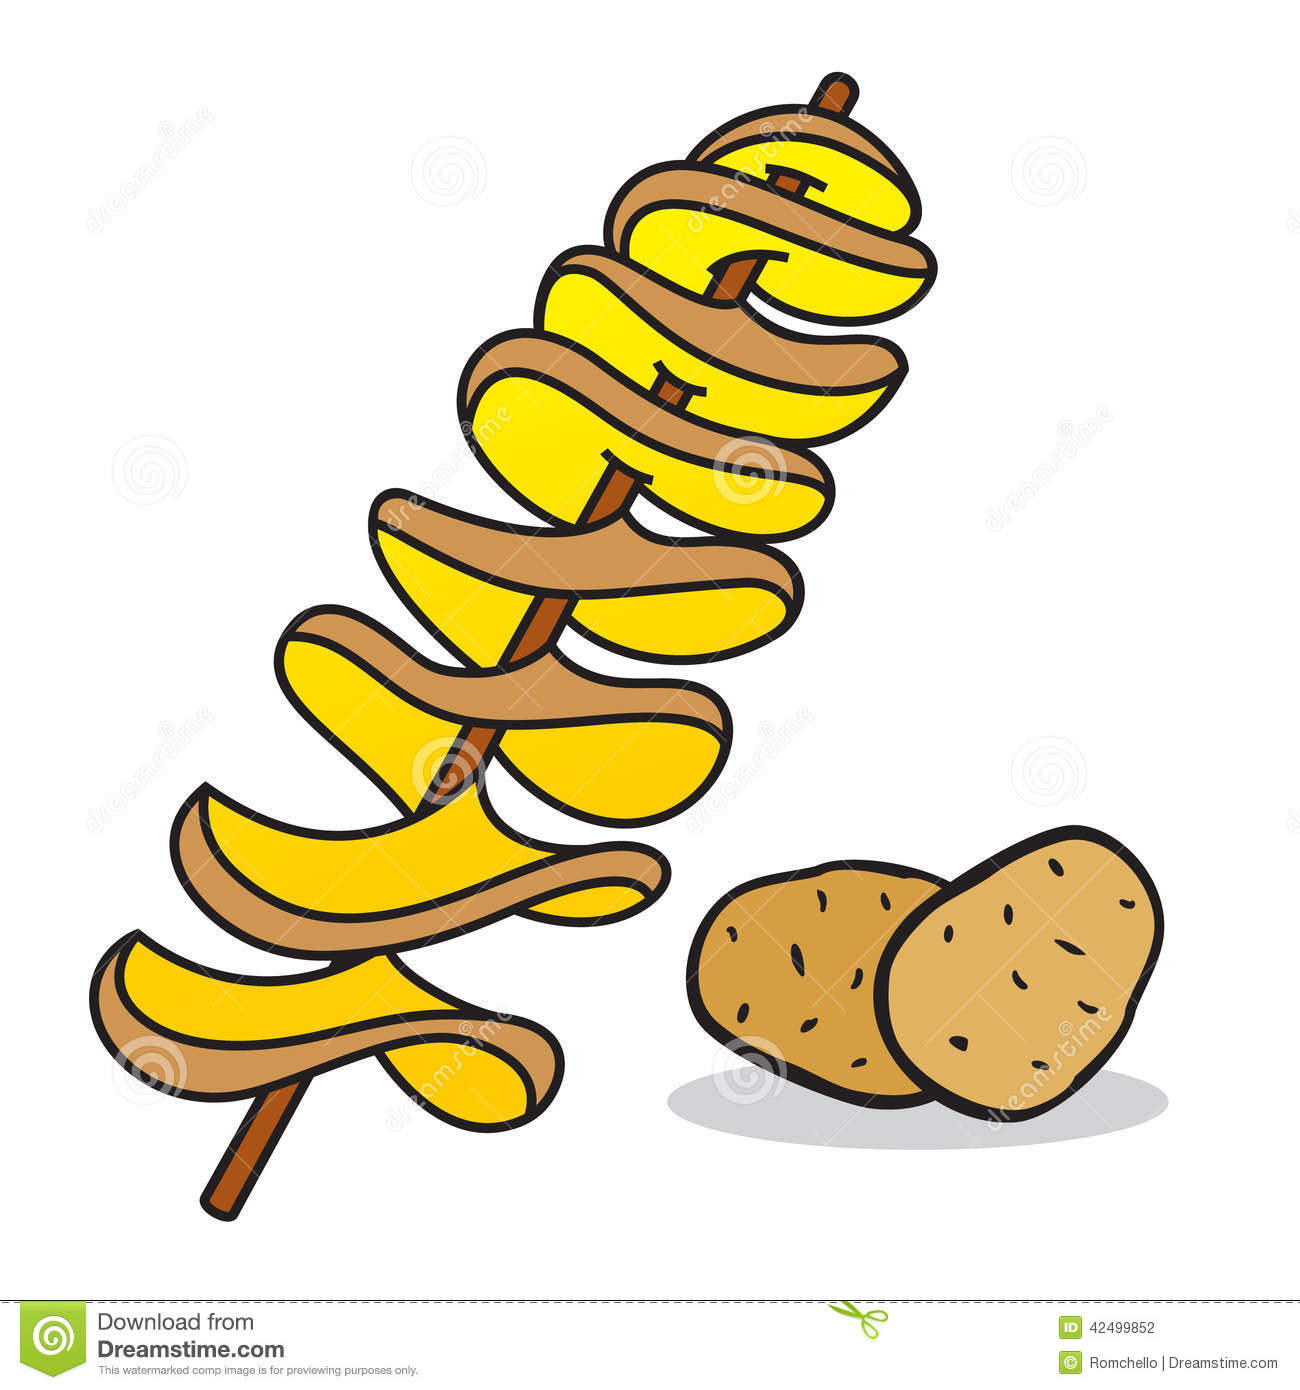 spiral potato stock illustration image 42499852 french fry clipart transparent Template French Fry